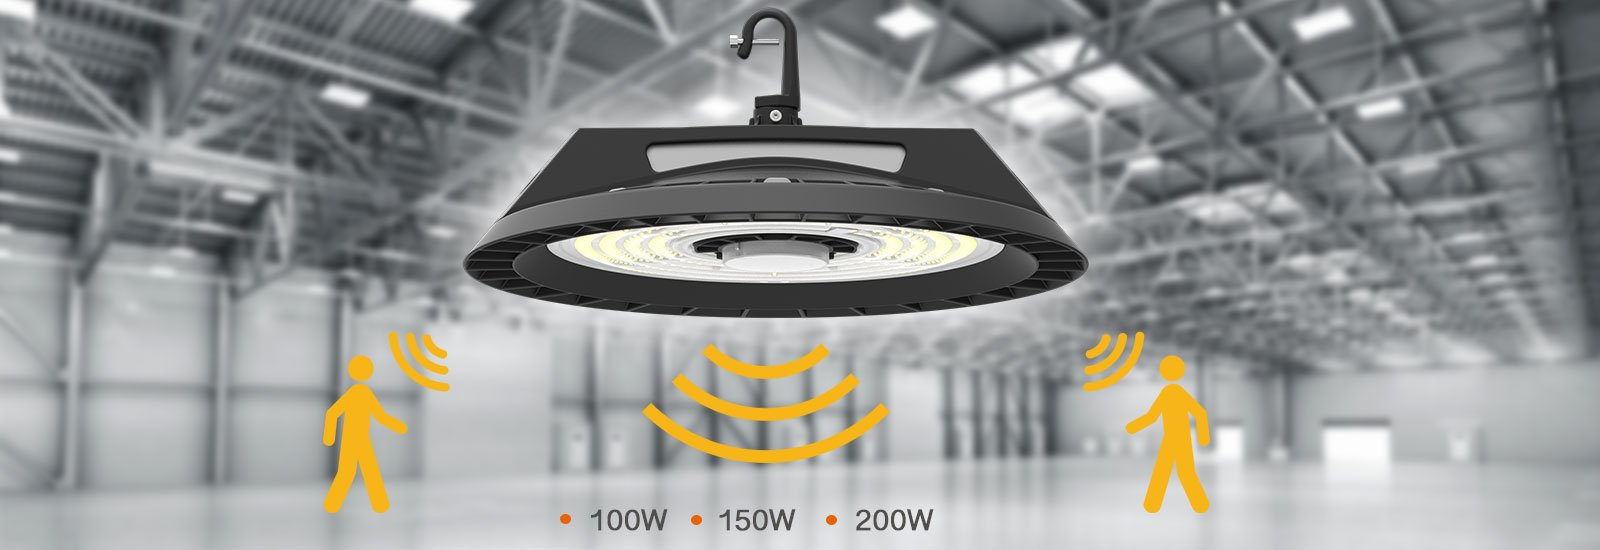 Banner-Crown-LED-High-bay-light